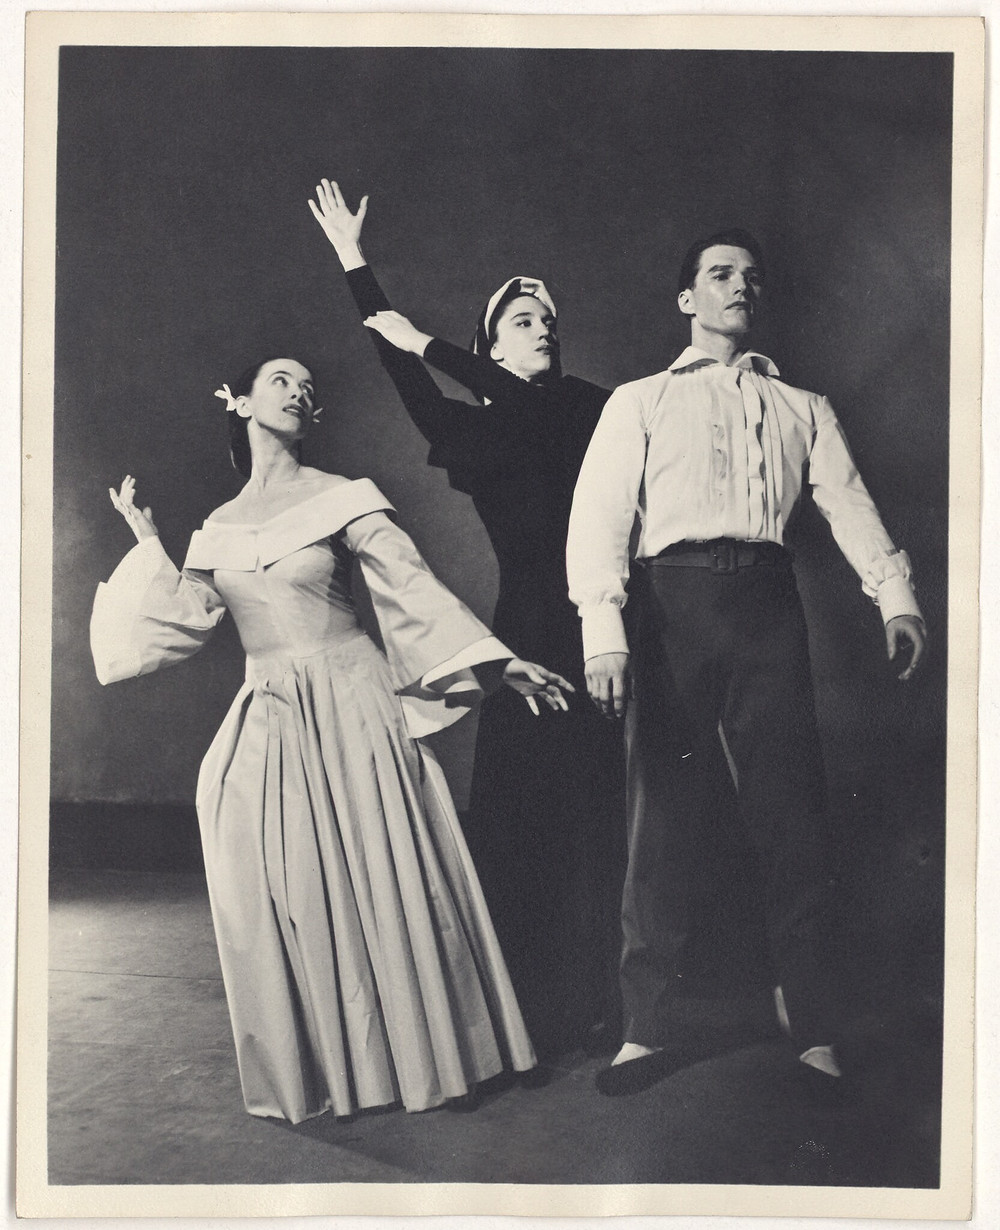 Barbara Morgan, photographer. Martha Graham, May O'Donnell (?), and Erick Hawkins in Letter to the World, circa 1940. Box 134, folder 4, Erick Hawkins and Lucia Dlugoszewski Papers, Music Division.